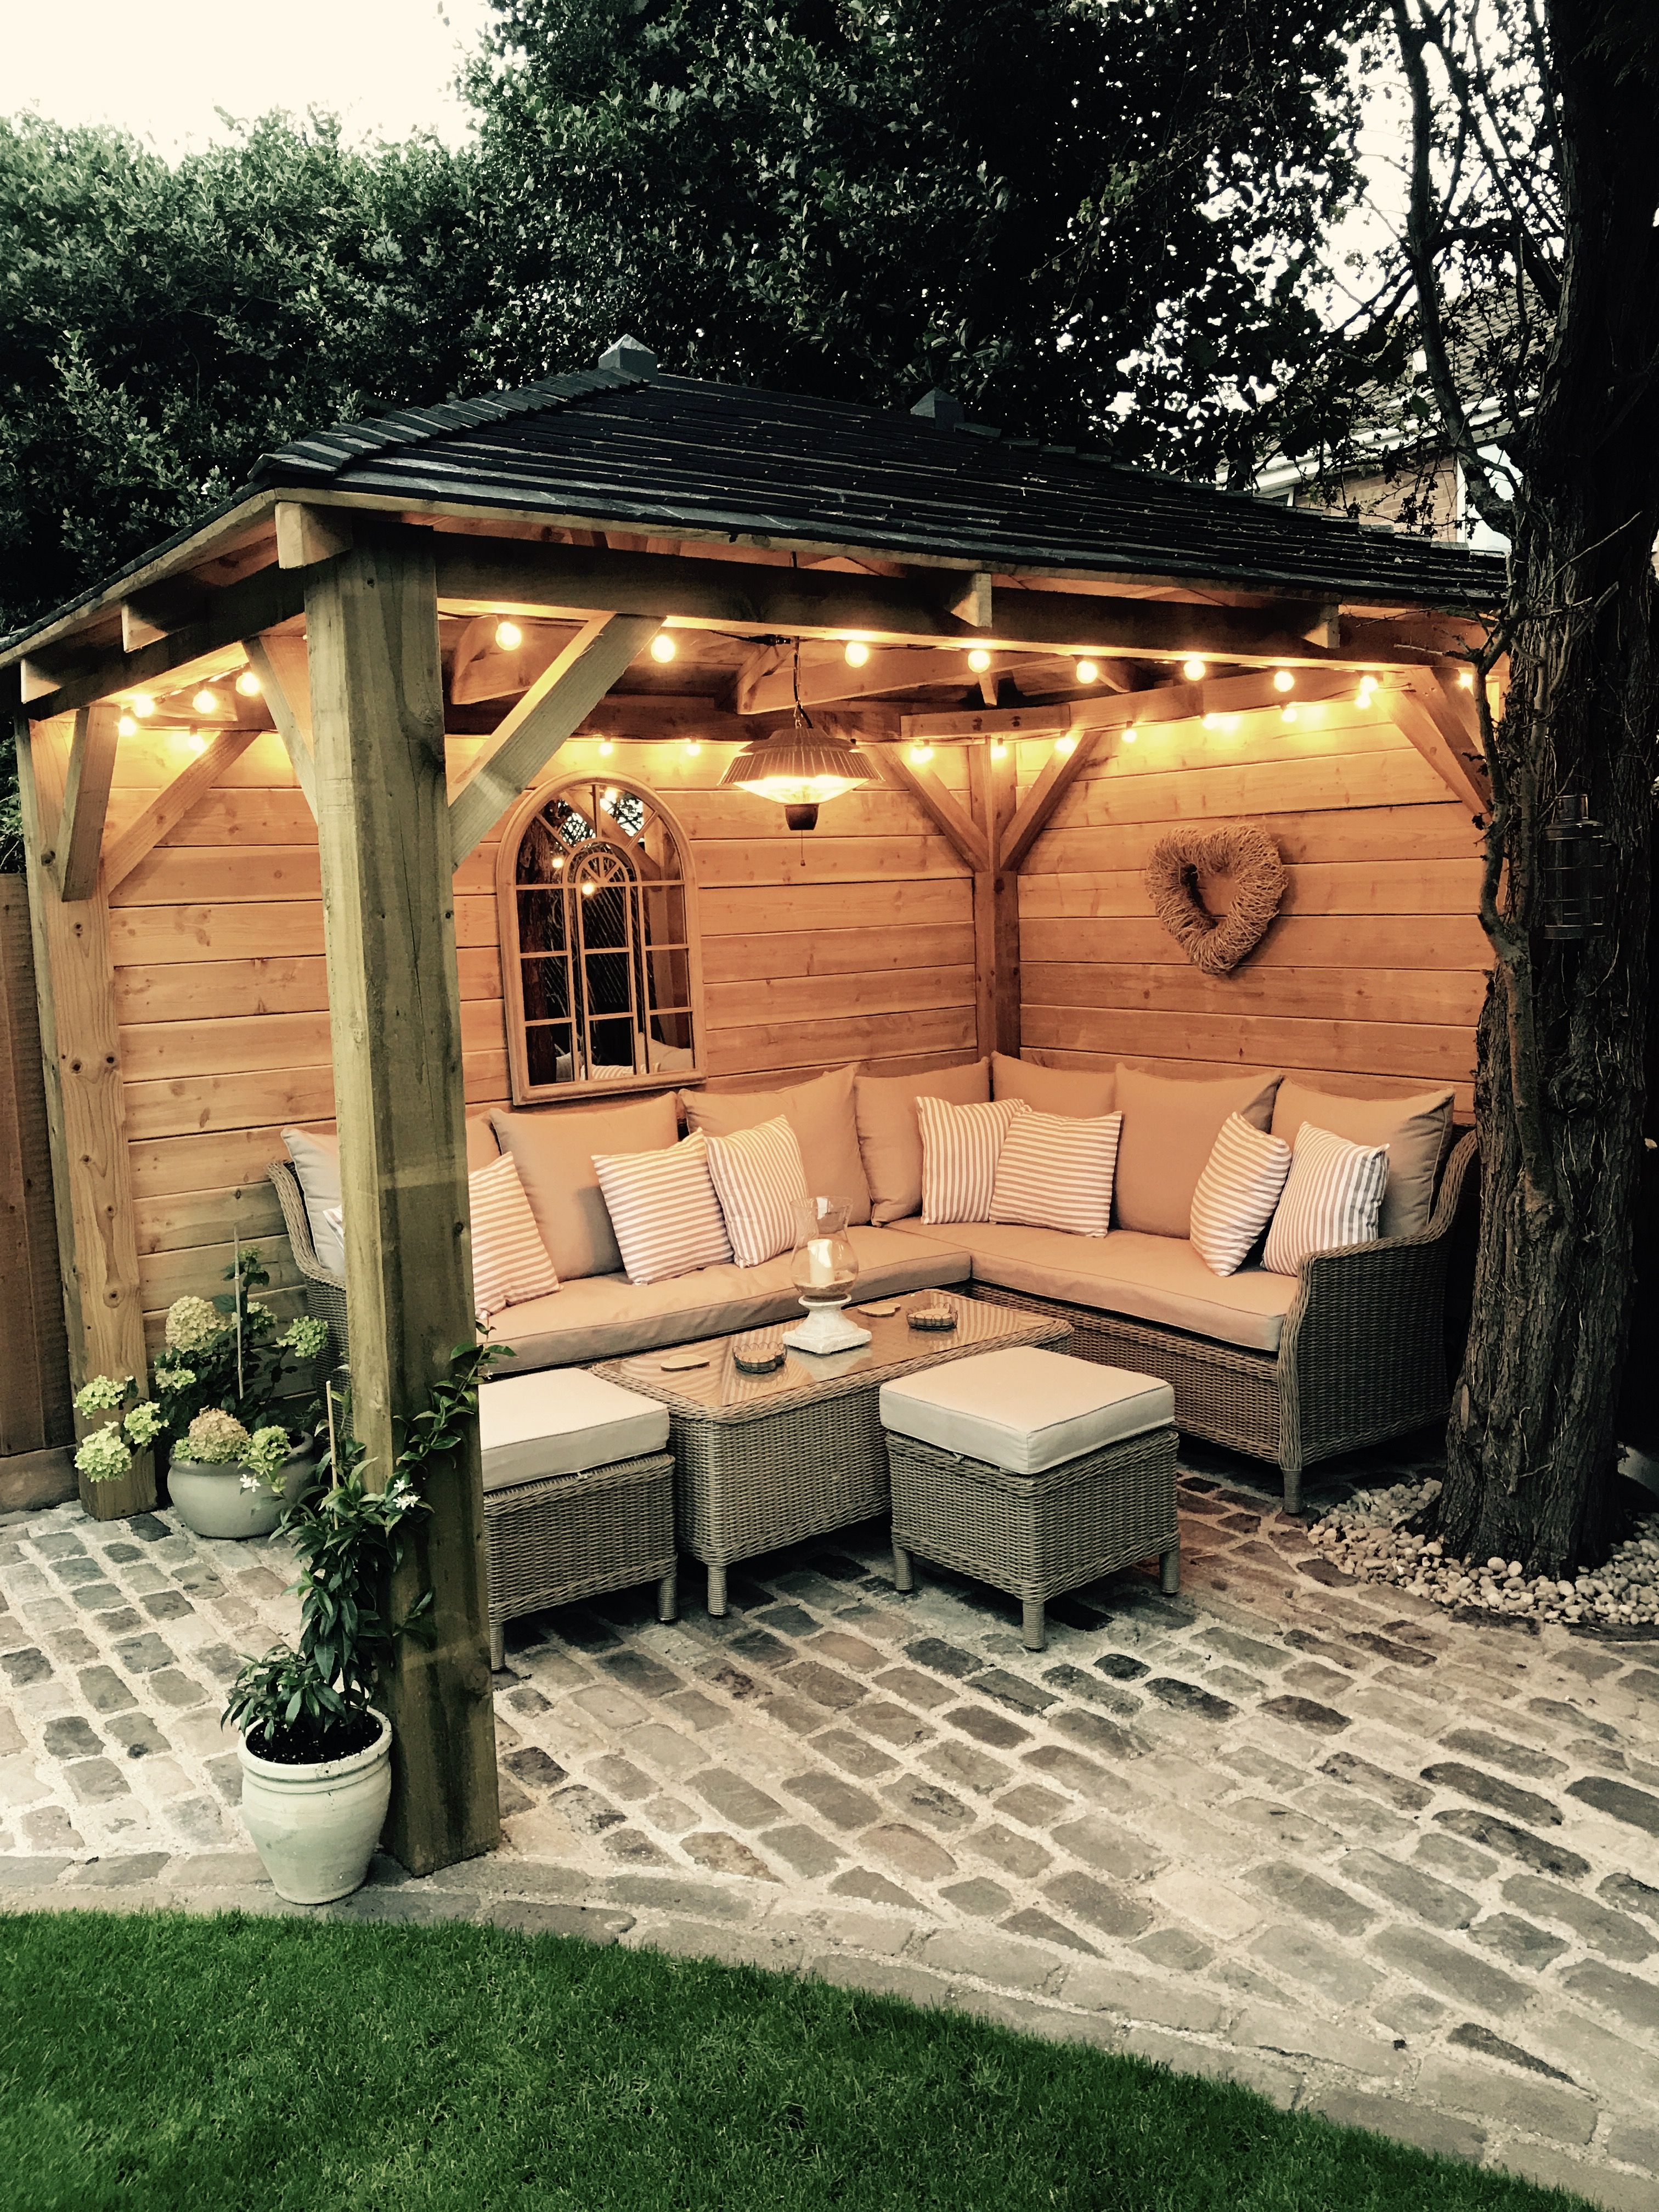 Homemade Wooden Gazebo Cobbles Garden Lights Outdoor Sofa with size 3024 X 4032